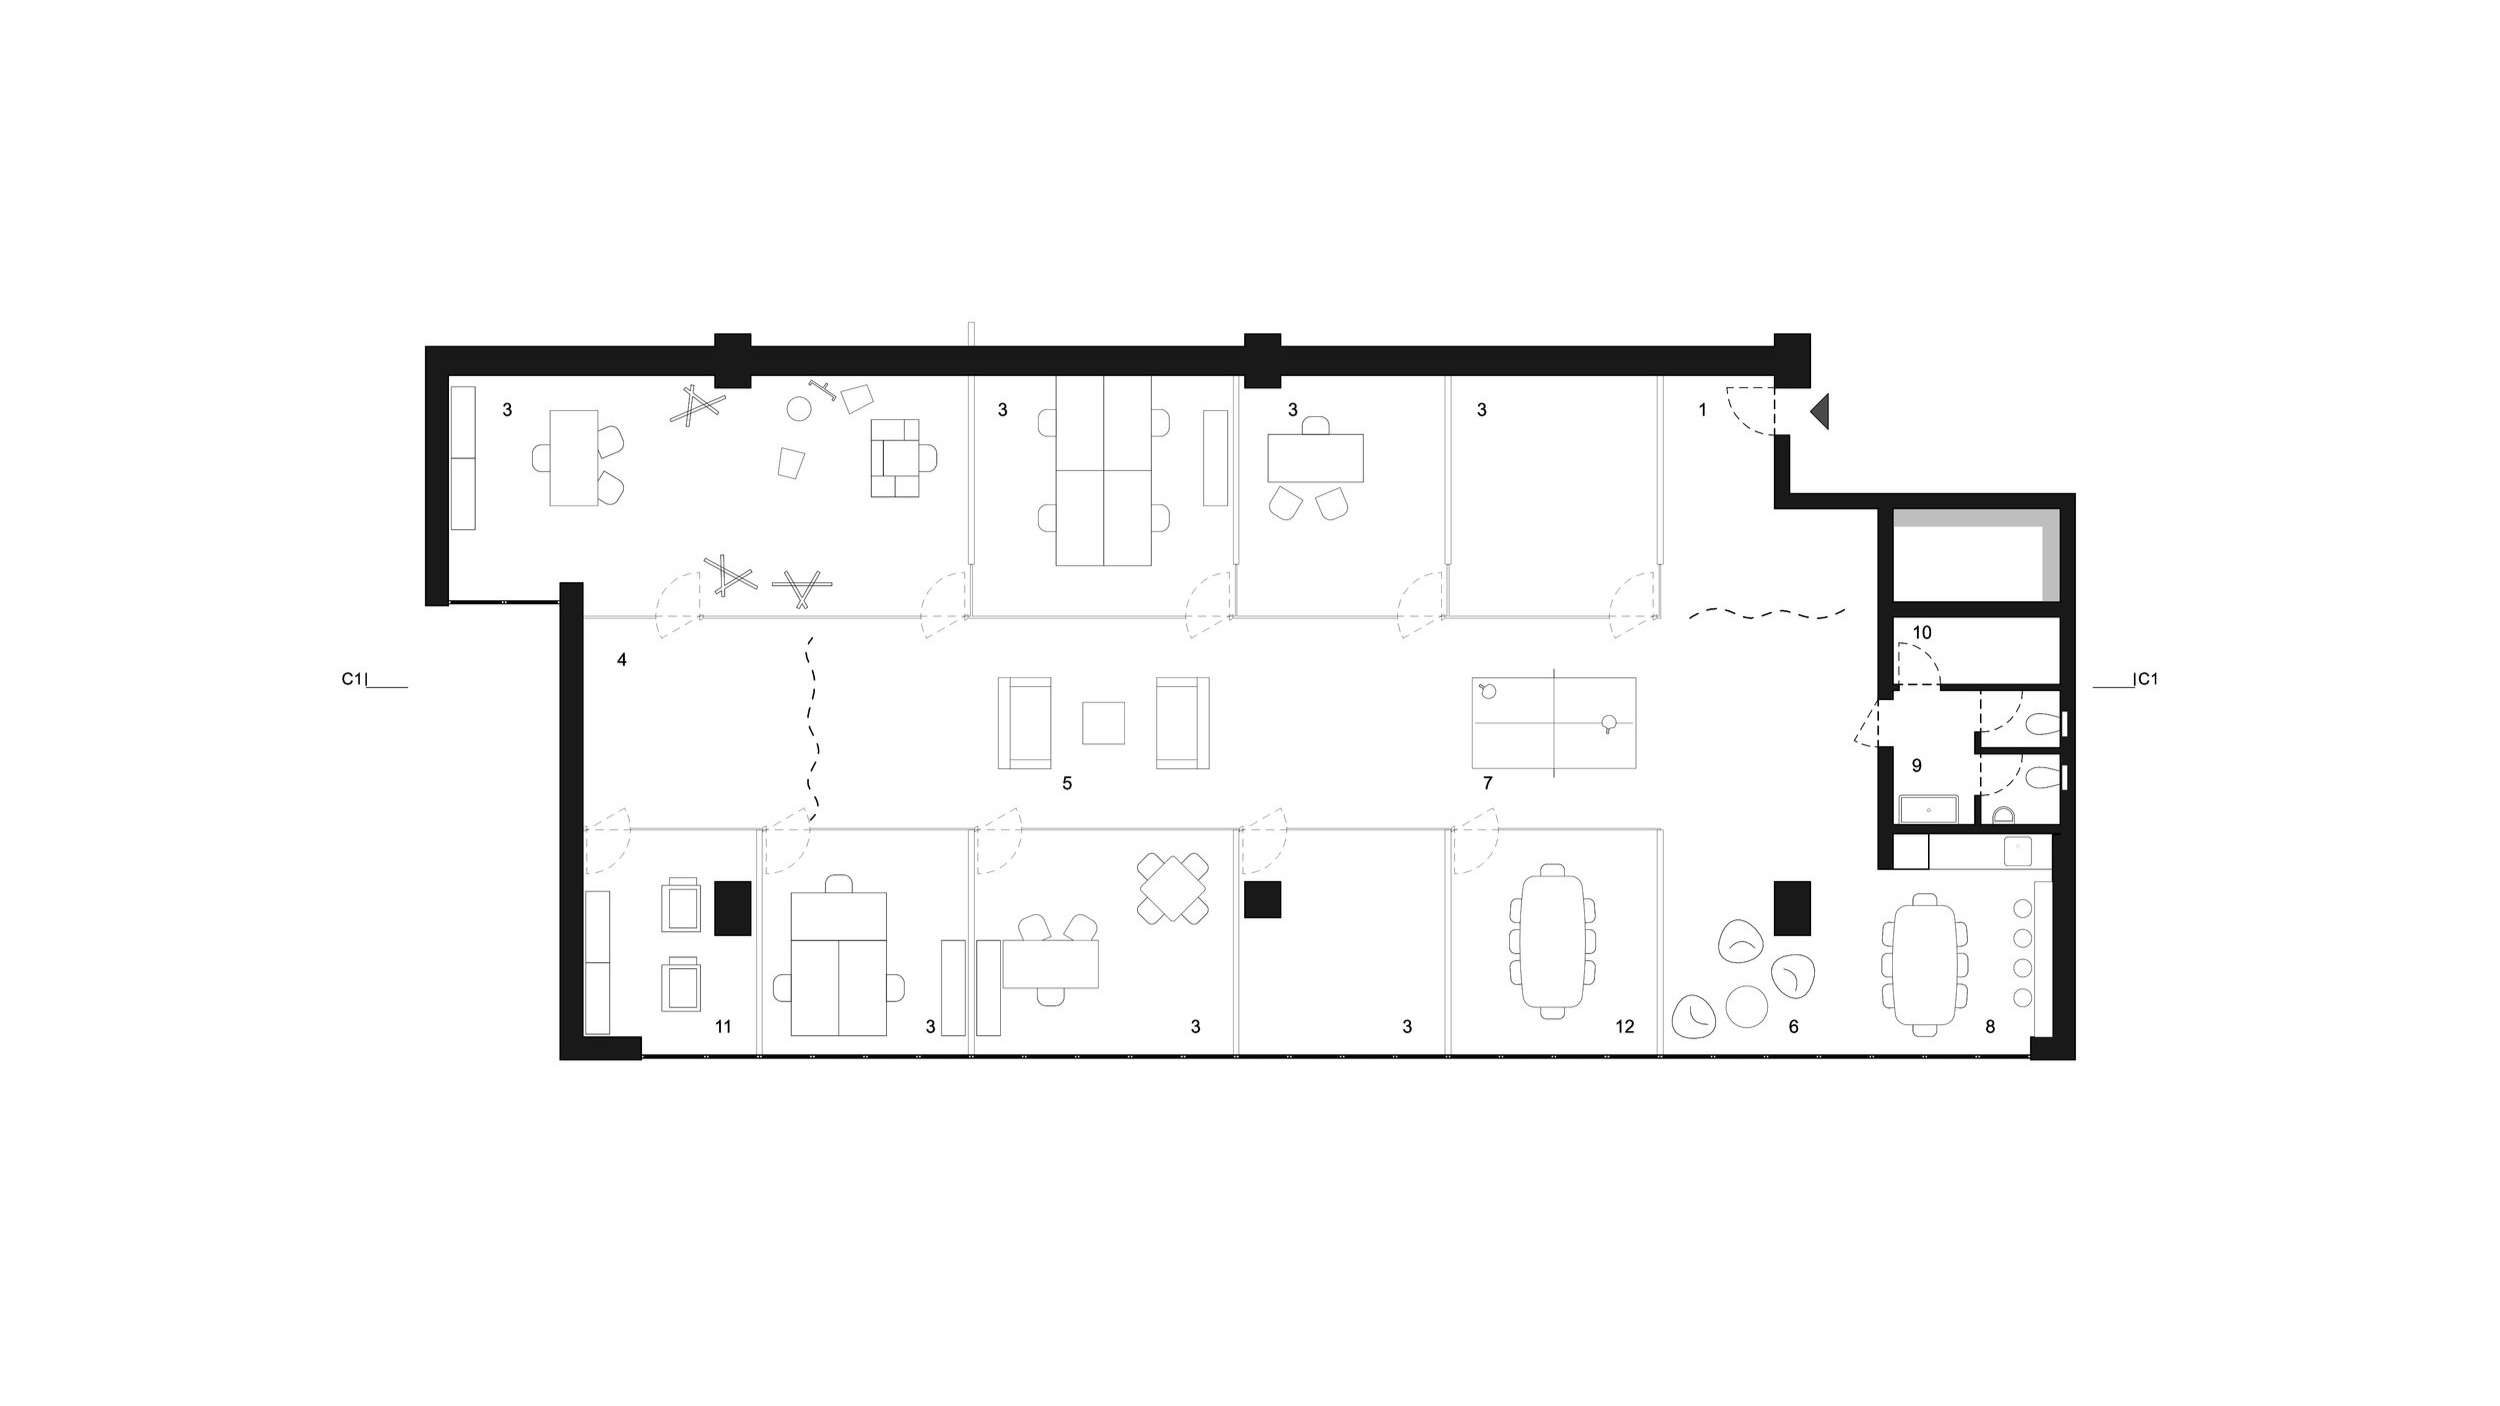 FLOOR PLAN _ 1 entrance hall . 2 circulation . 3 office . 4 photo shooting area . 5 lounge . 6 meeting corner . 7 playing area . 8 pantry . 9 toilets . 10 storage . 11 copy room . 12 meeting room